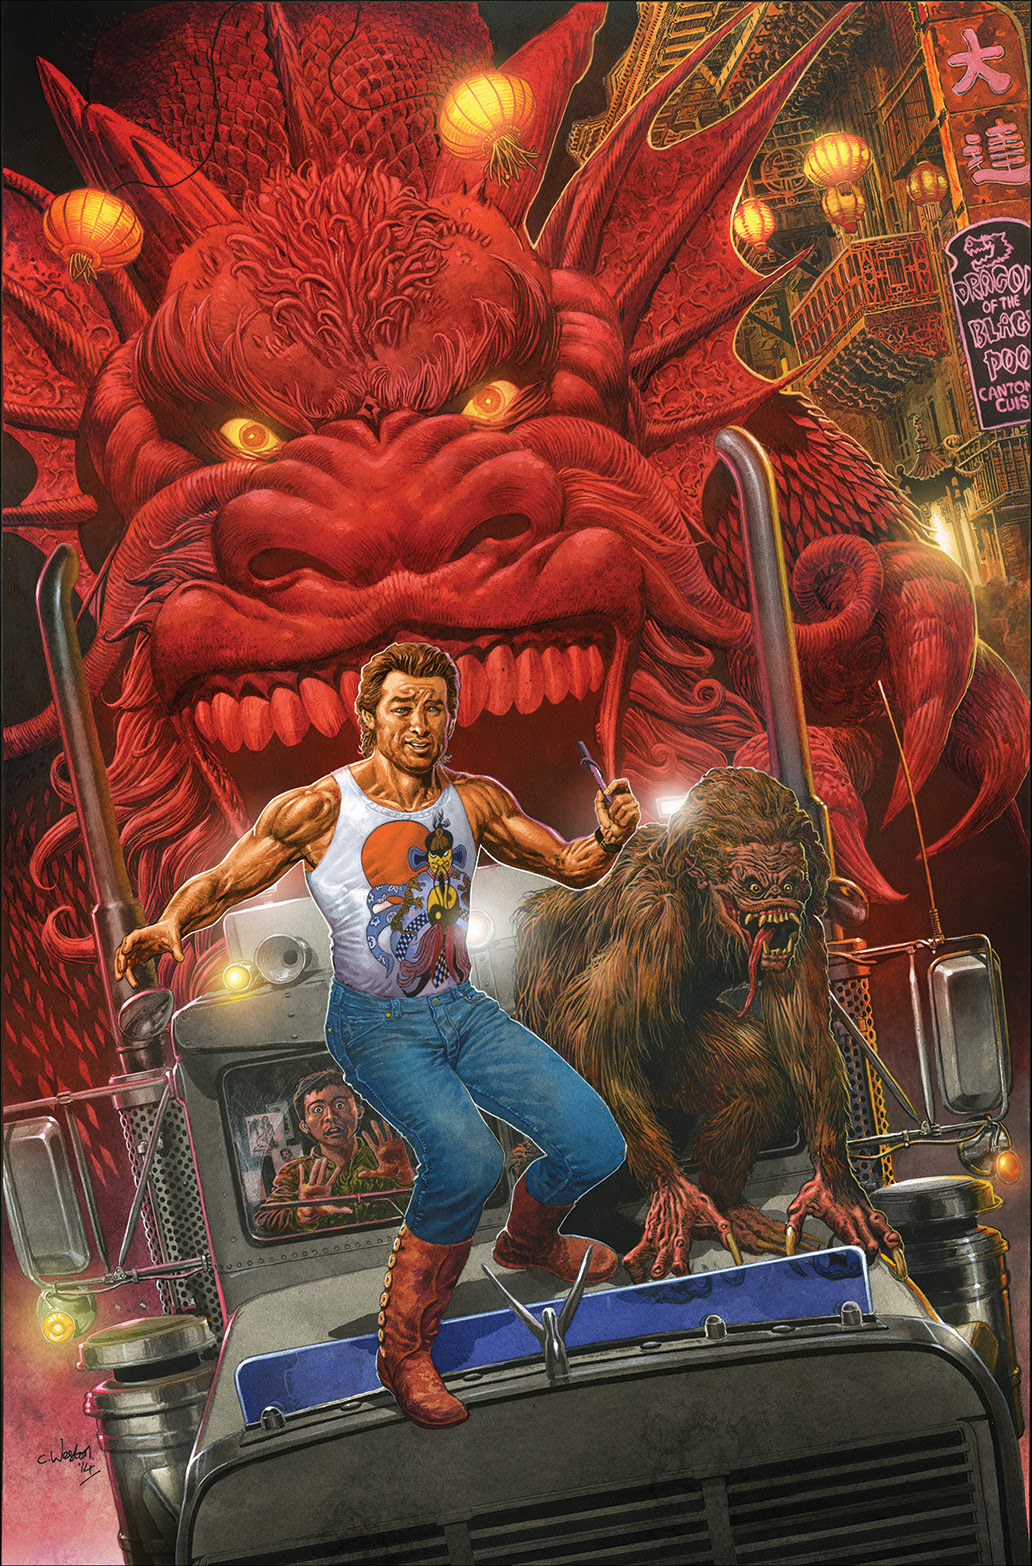 Big Trouble in Little China #1 Cover C